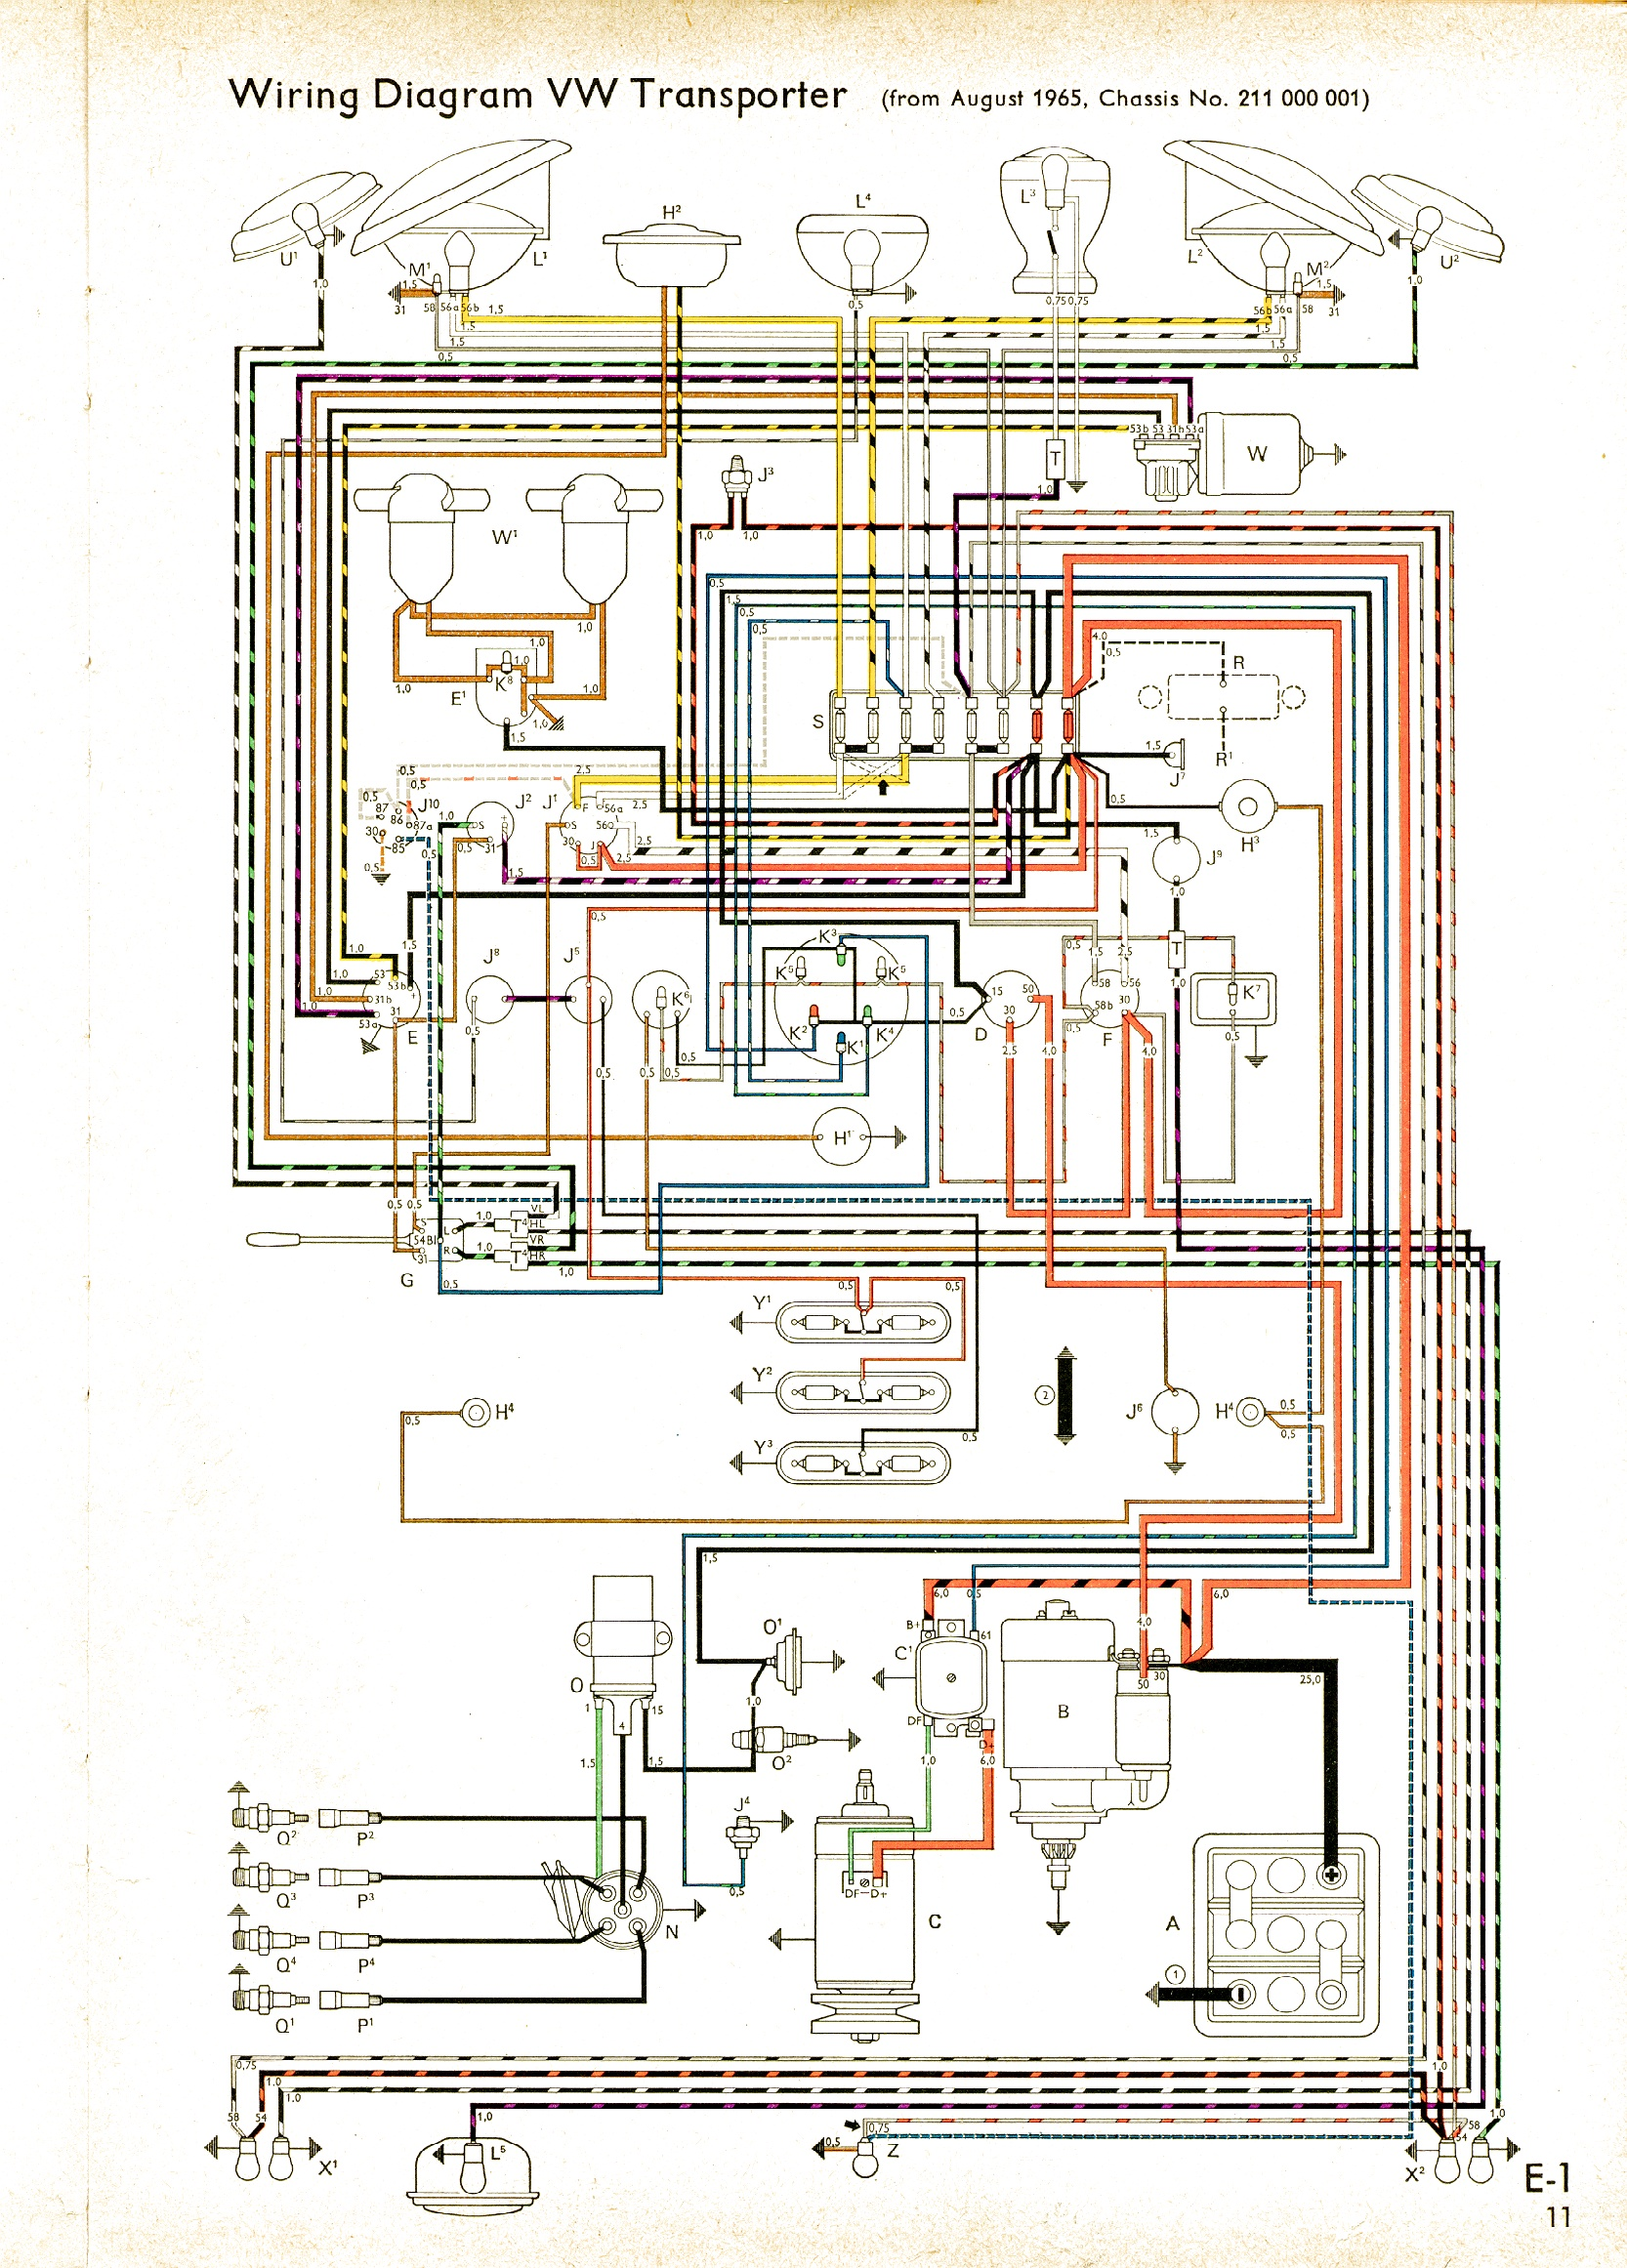 1967 vw beetle wiring diagram RIDAwNe 1967 vw bug wiring diagram on 1967 download wirning diagrams 1970 vw bug wiring diagram at alyssarenee.co